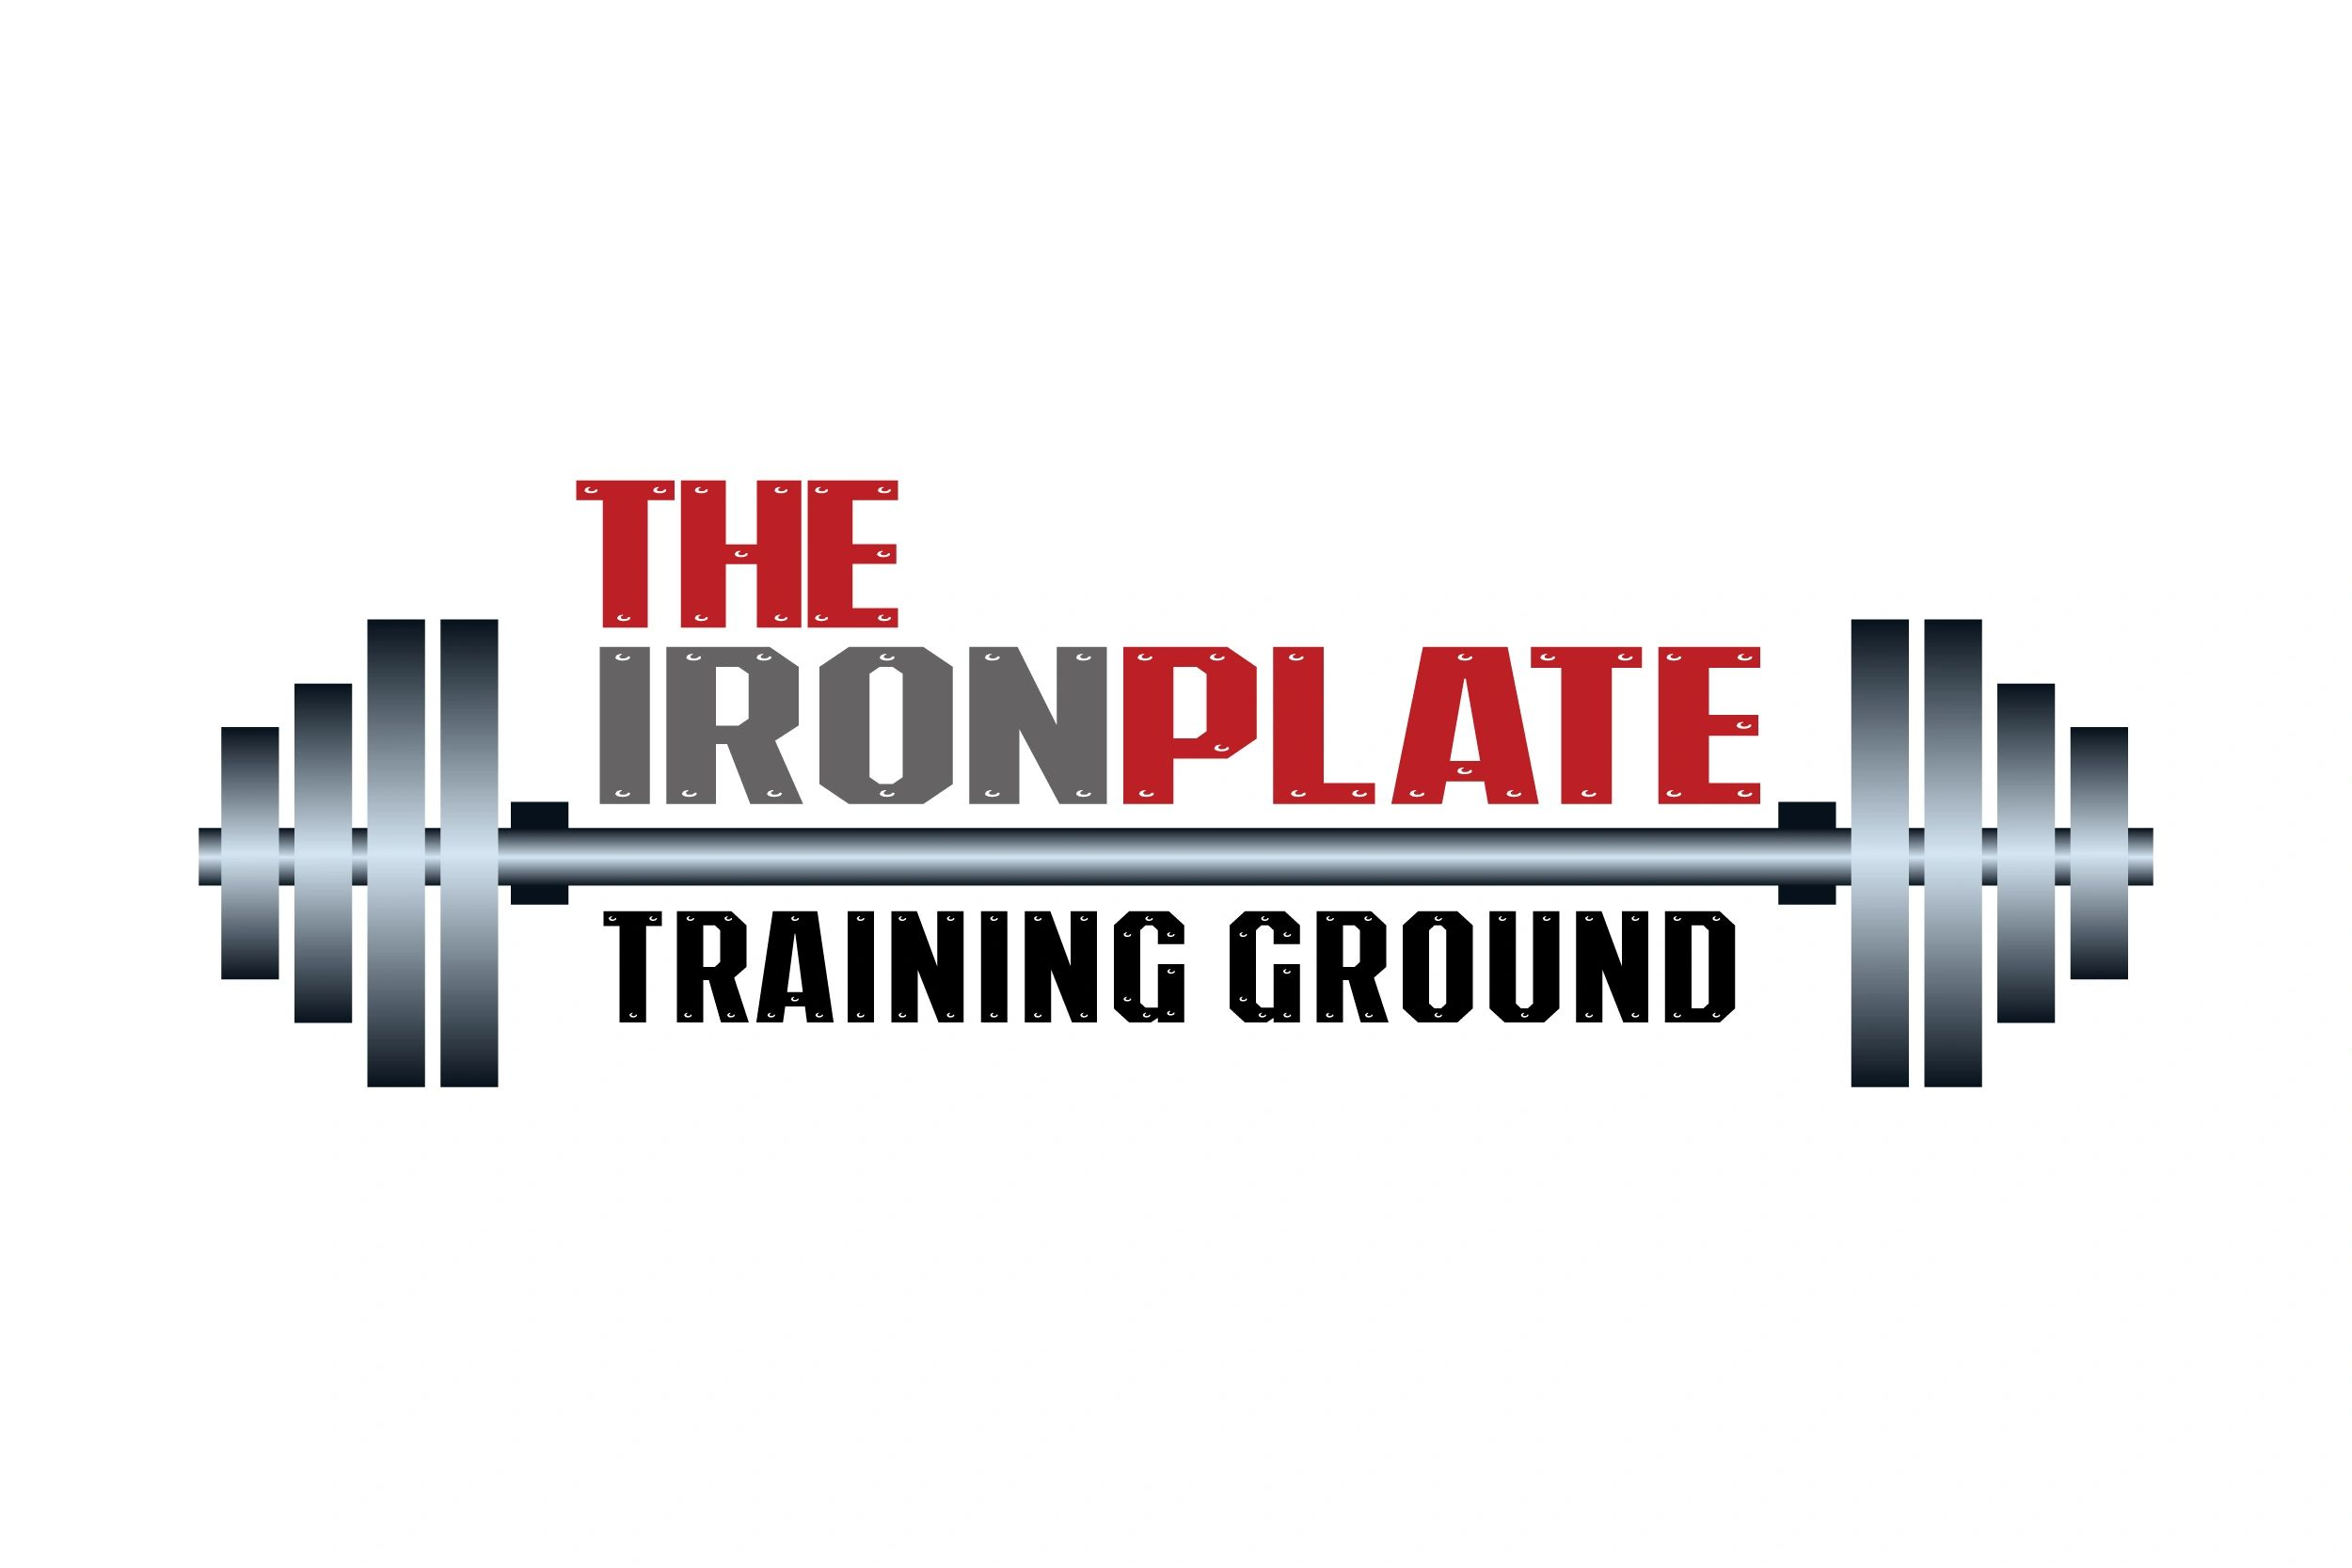 iron plate gym, training, recovery, smoothie bar, supplements, gym, workout facilities, tanning